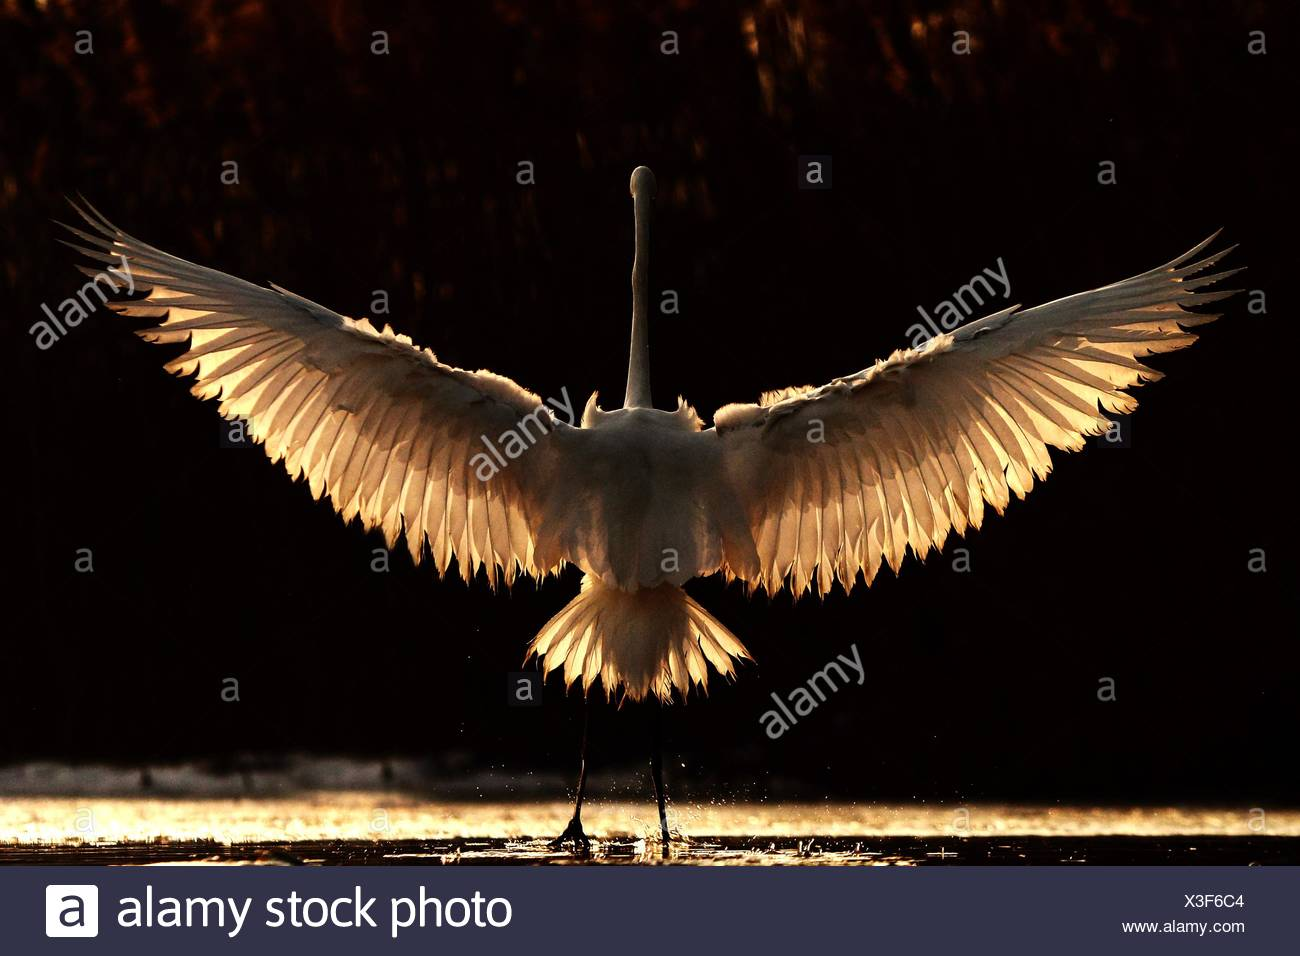 Great Egret with back backlight with wings open - Stock Image